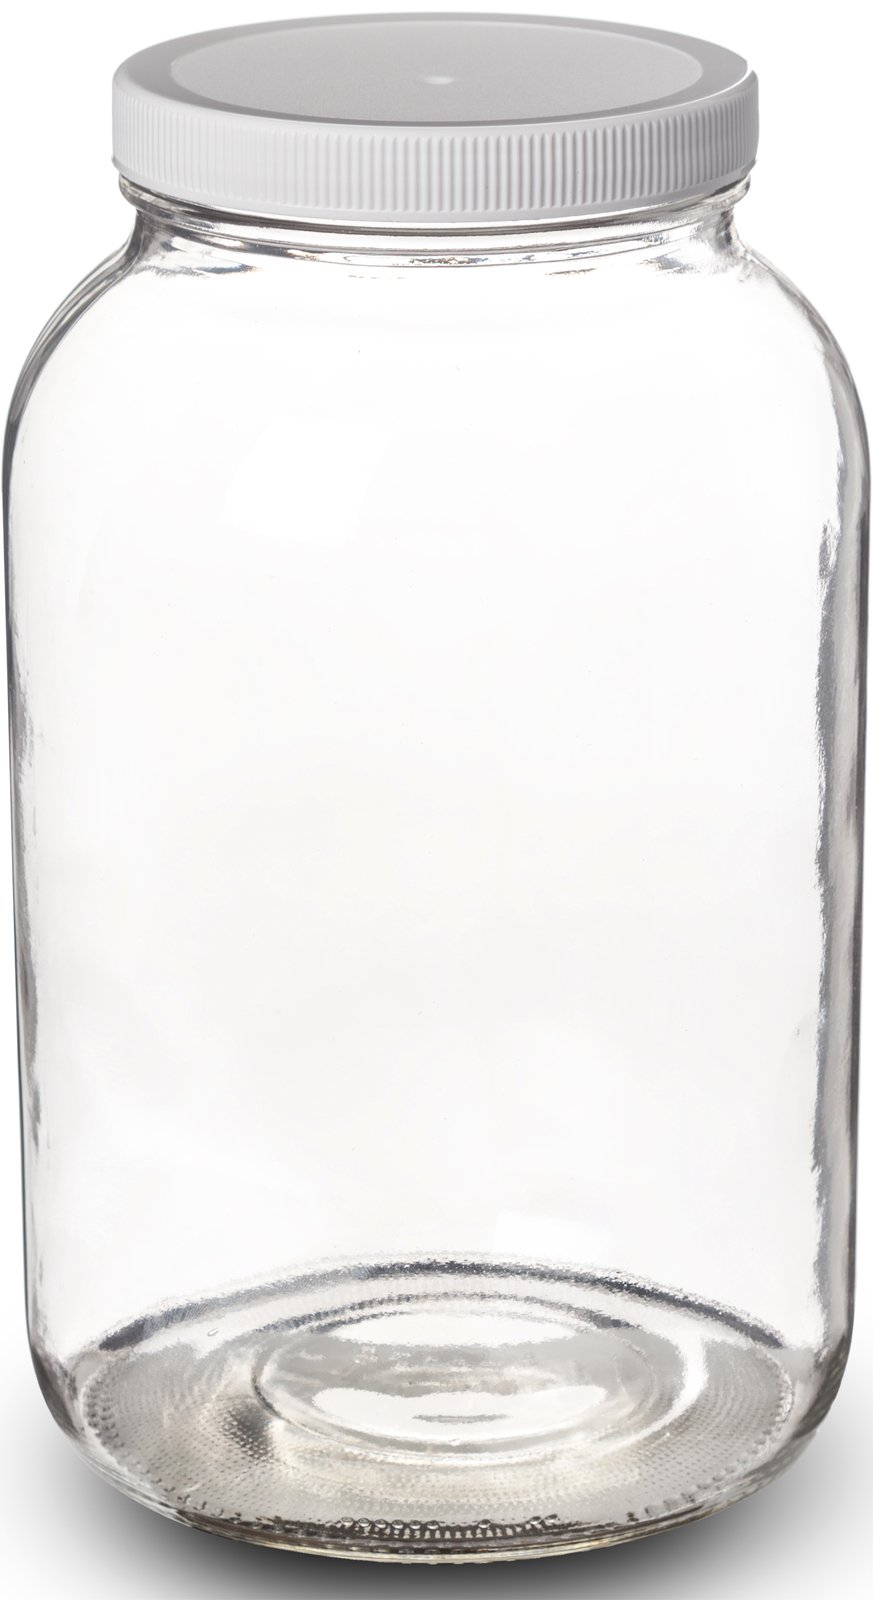 Paksh Novelty 1-Gallon Glass Jar Wide Mouth with Airtight Plastic Lid - USDA Approved BPA-Free Dishwasher Safe Mason Jar for Fermenting, Kombucha, Kefir, Storing and Canning Uses, Clear